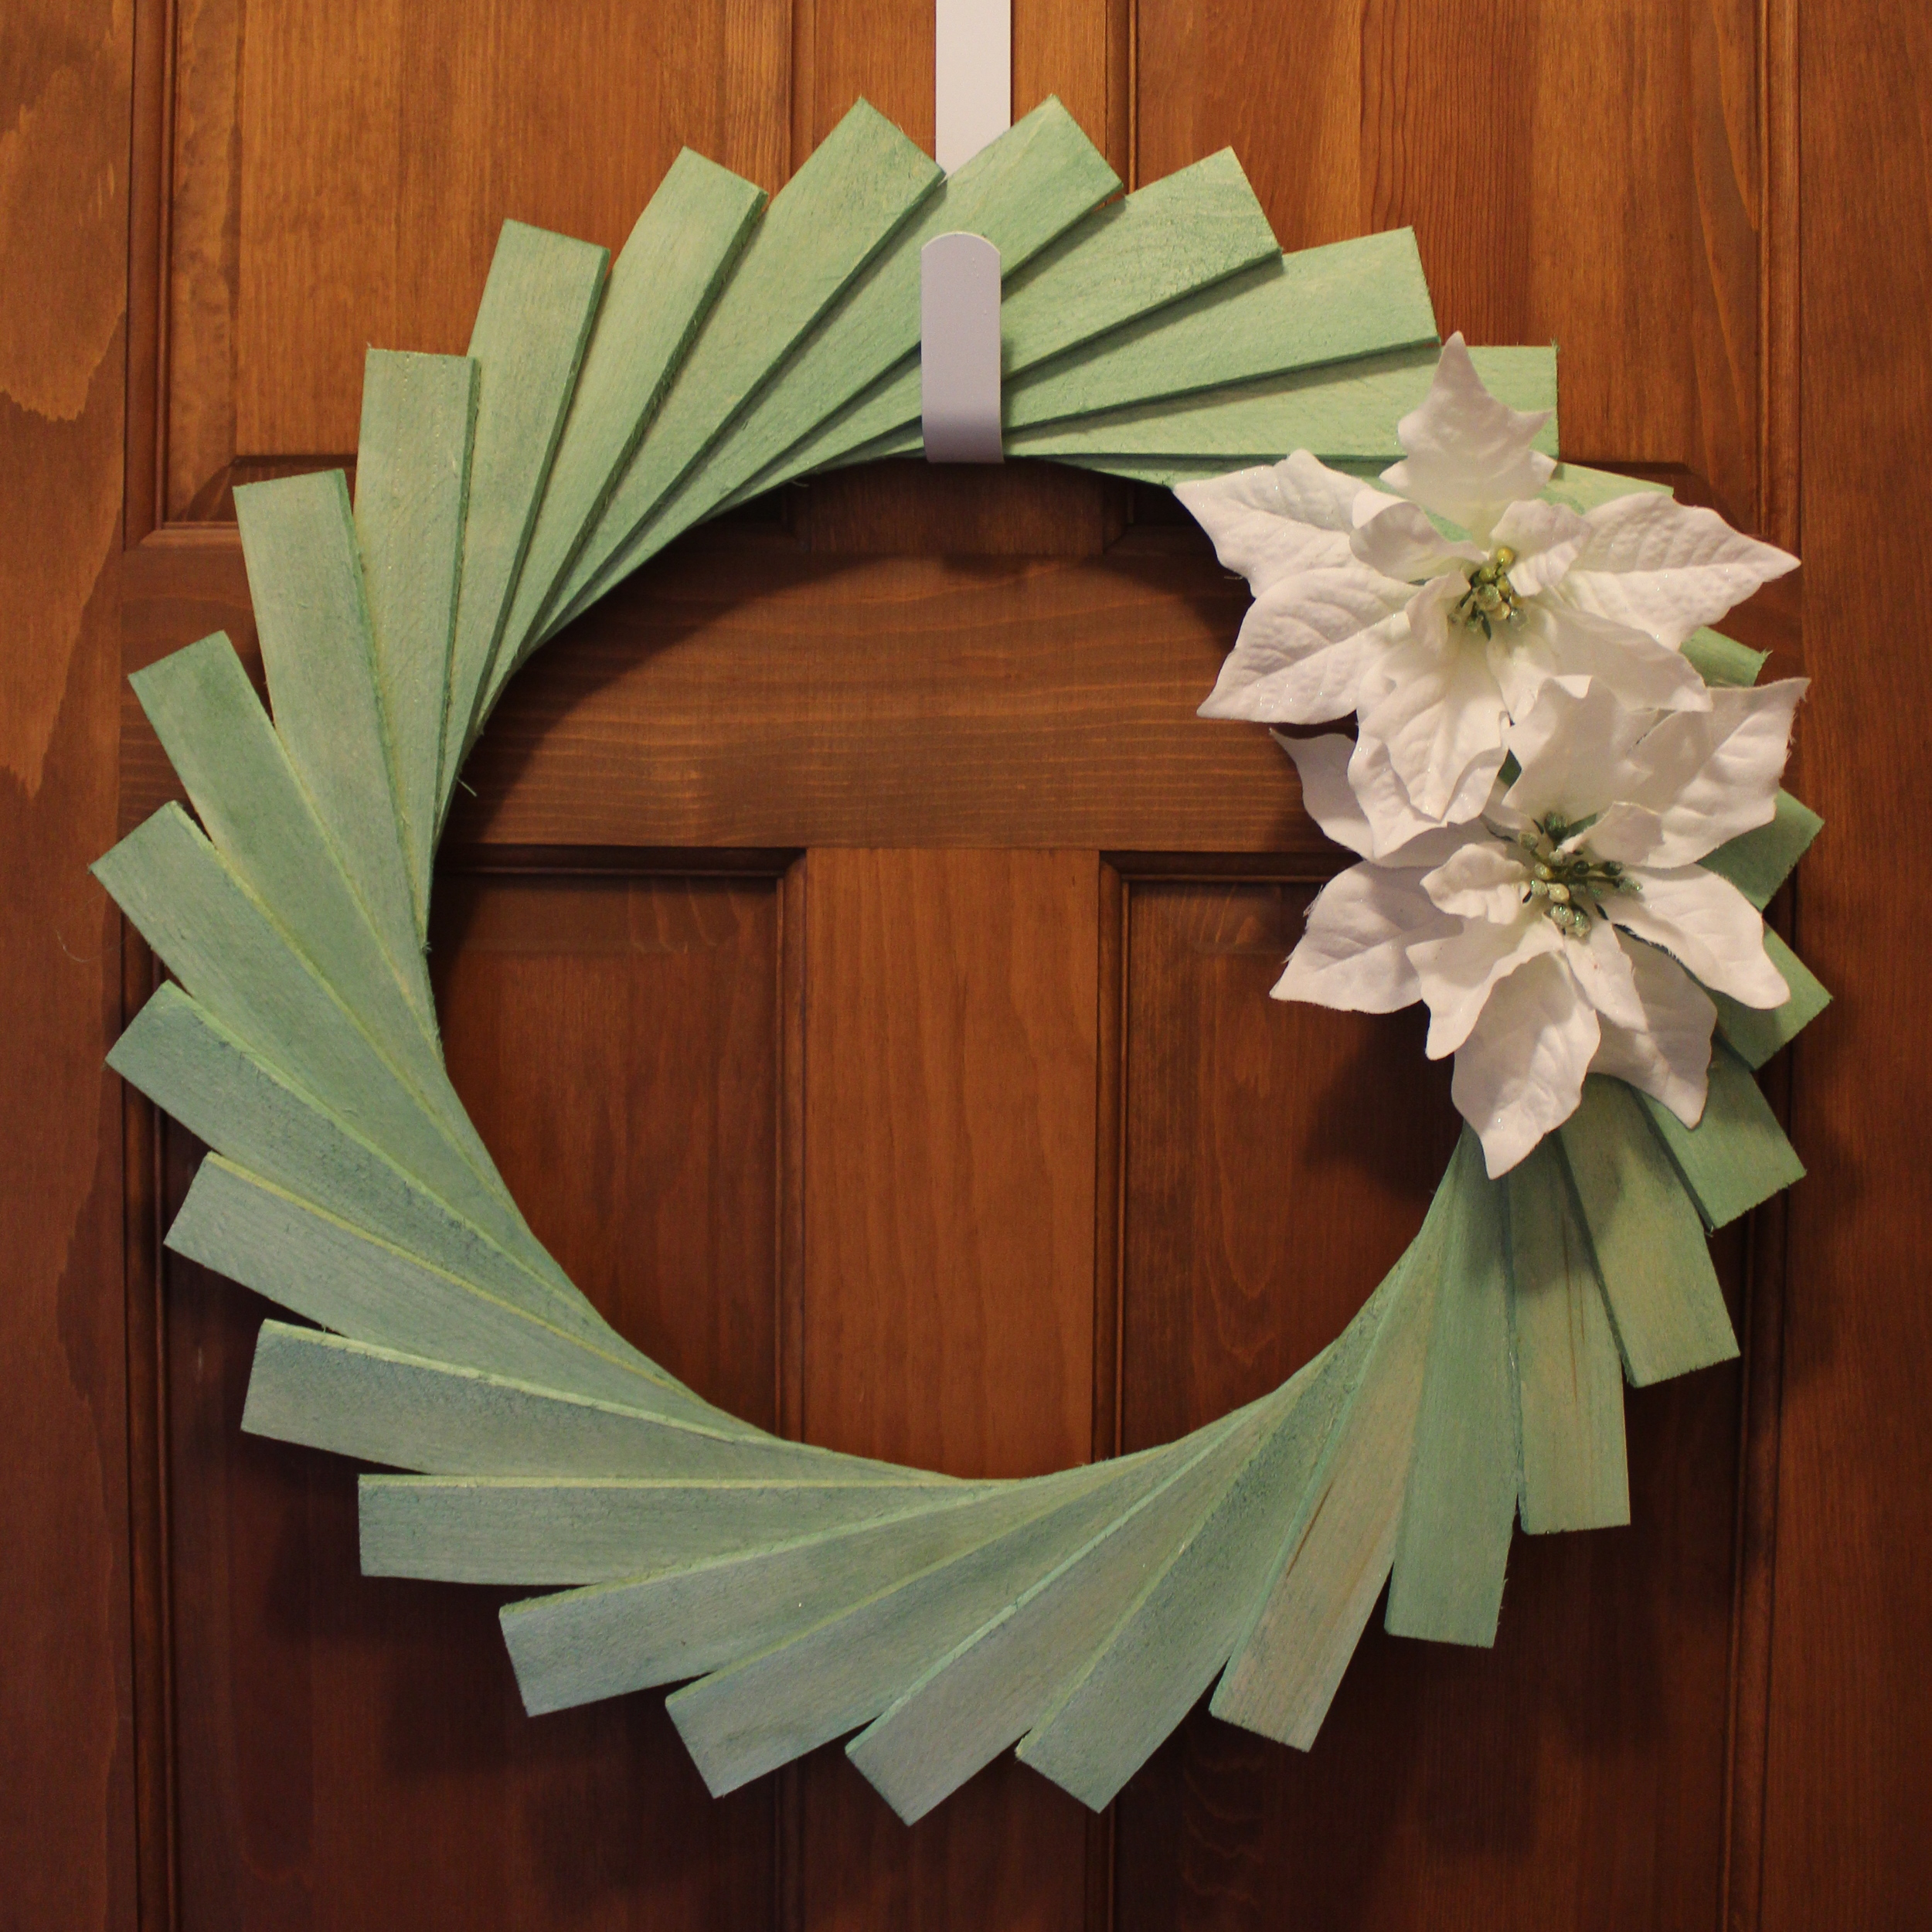 SSDC - Wooden Shim Wreath After